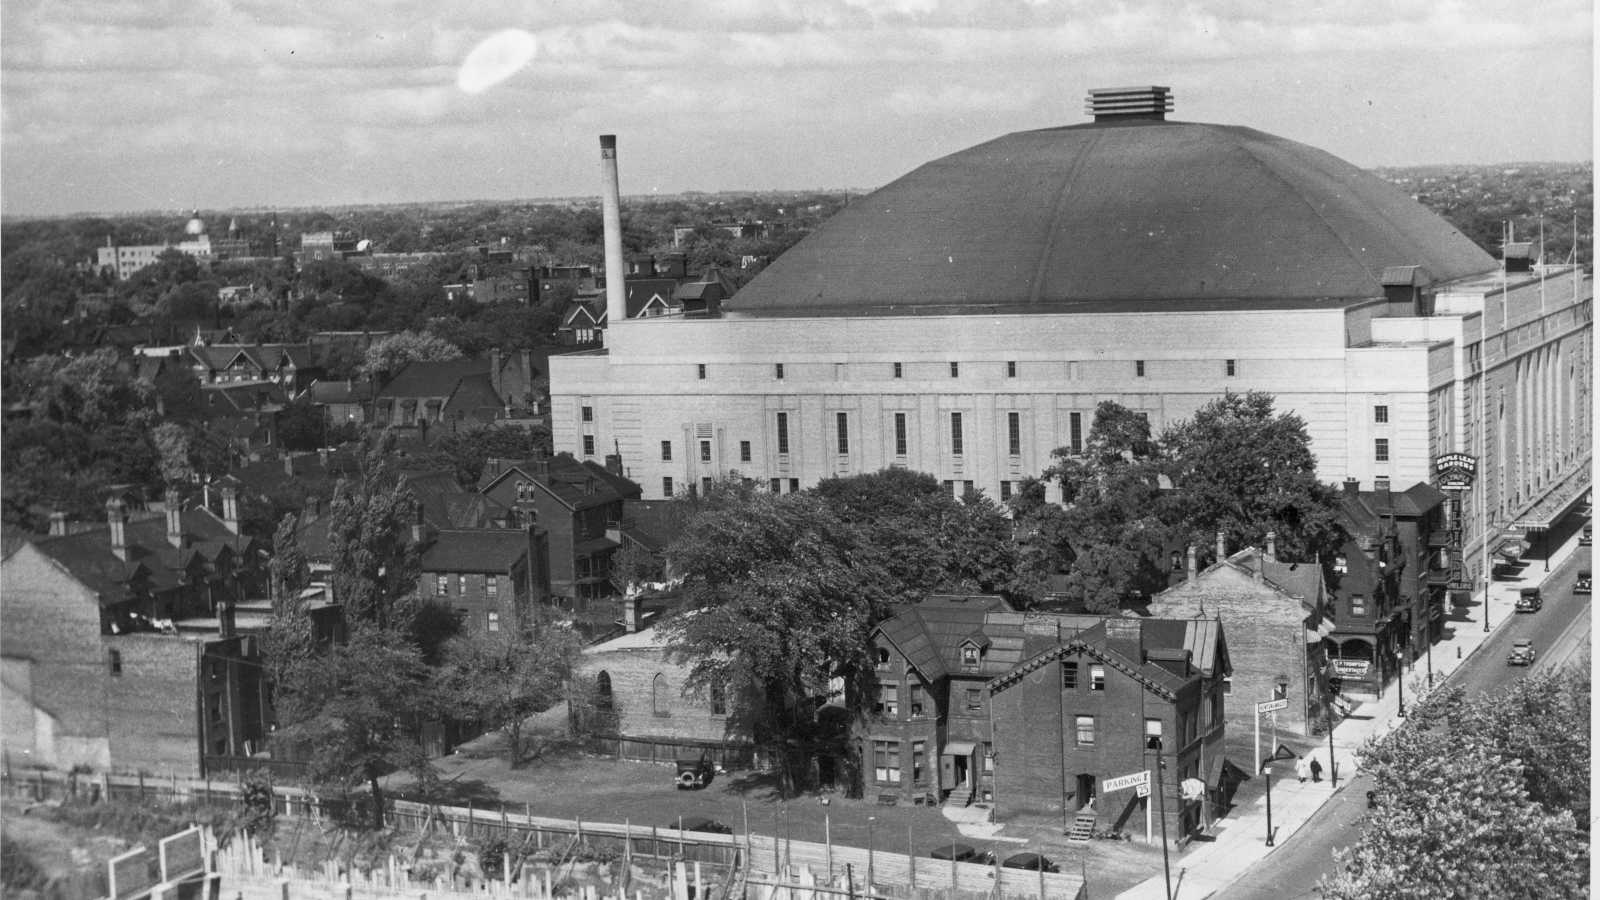 A black and white photograph of the exterior of Maple Leaf Gardens, a large arena, with trees surrounding the building and houses visible.